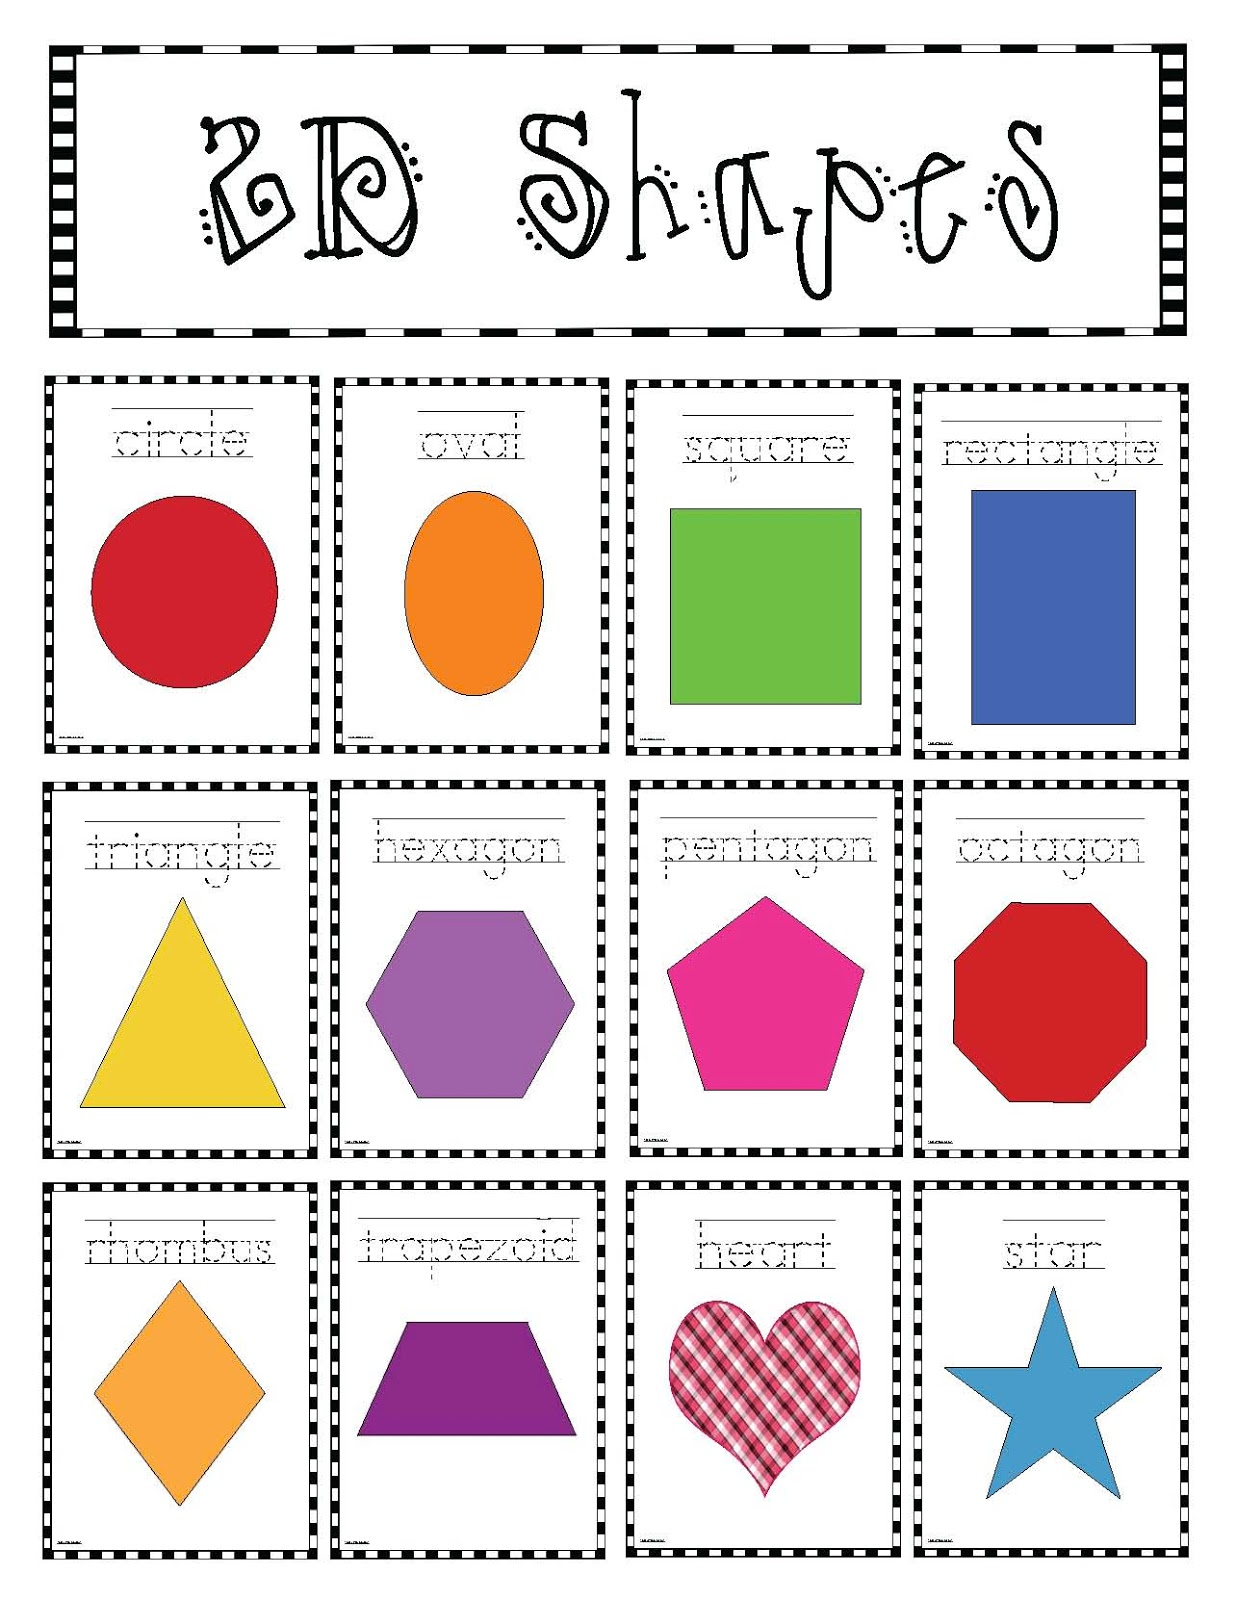 worksheet Kindergarten Shapes similiar shape chart for kindergarten keywords 2d shapes classroom freebies poster packet